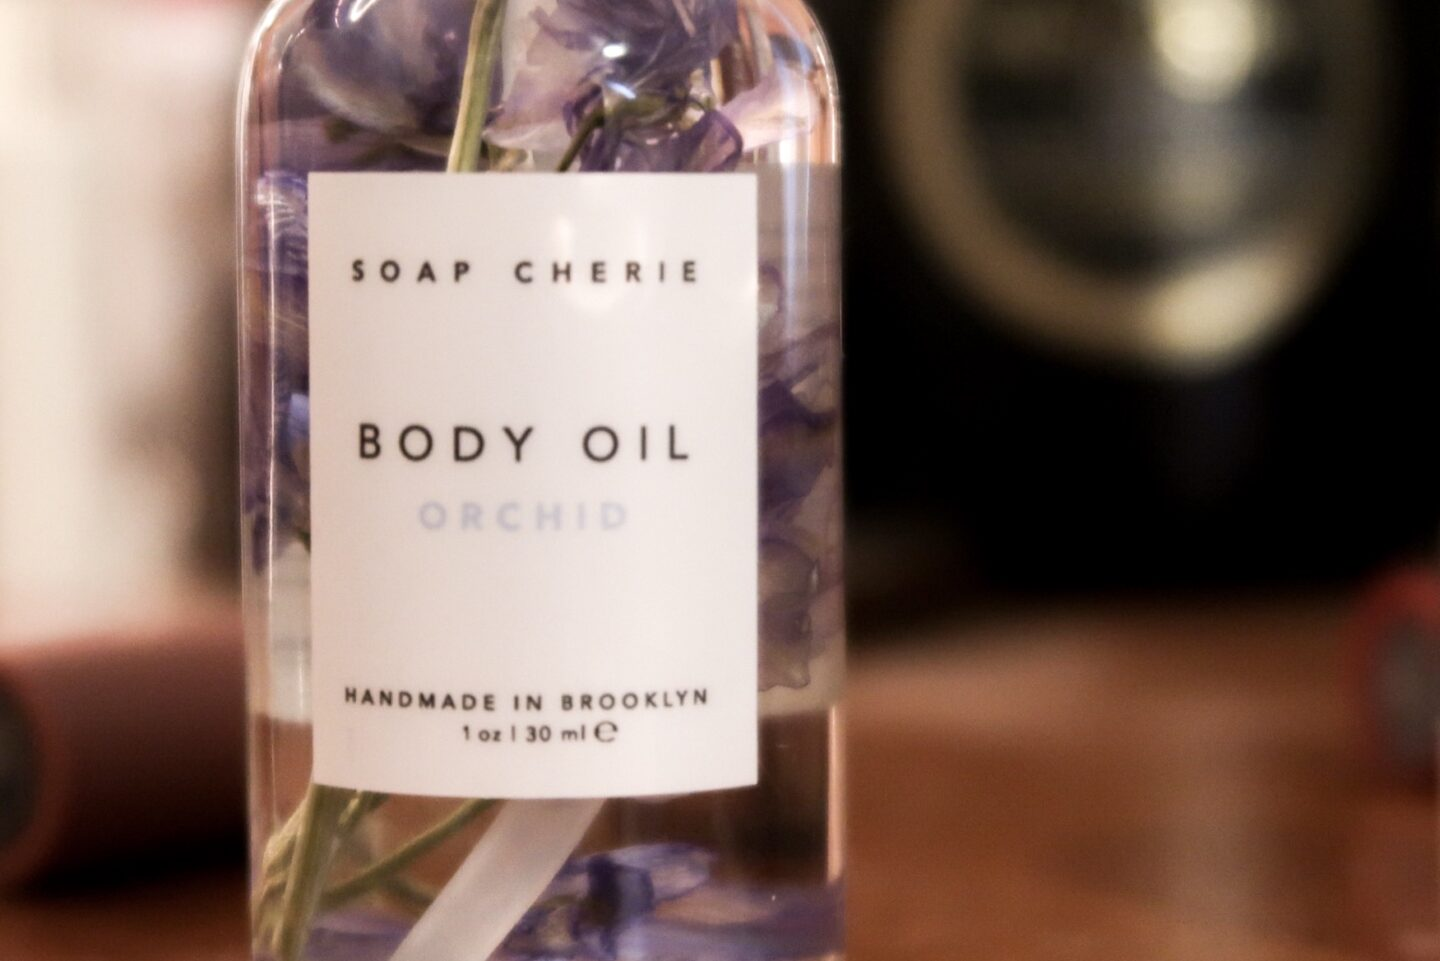 Soap Cherie Body Oil Orchid